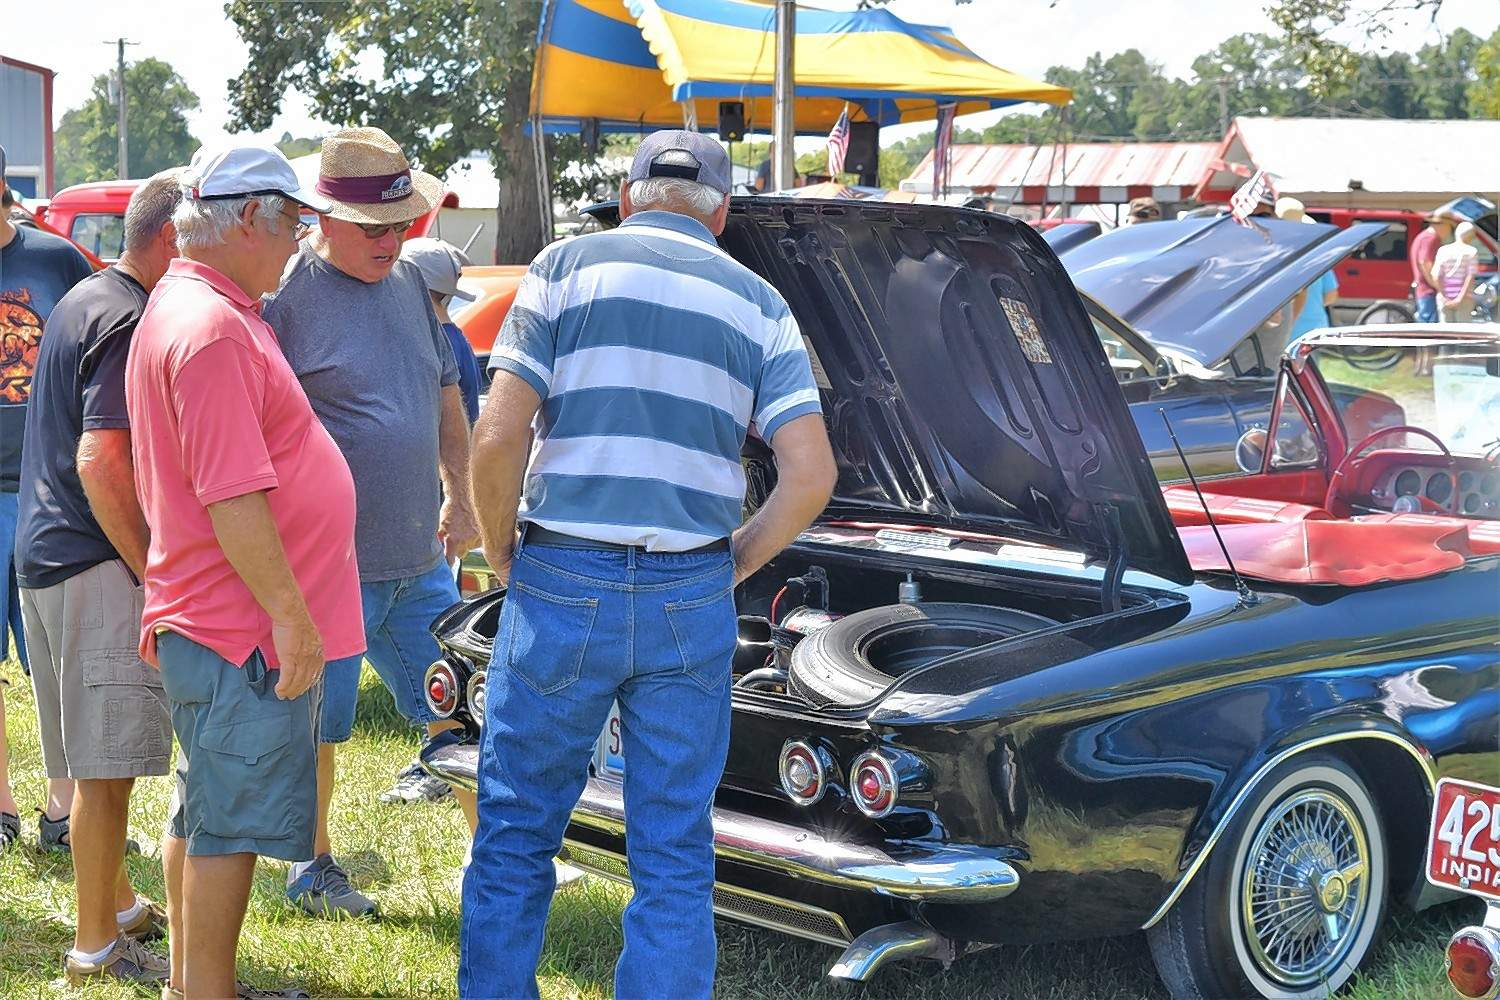 A group  of car enthusiasts inspect the trunk of a car on display.